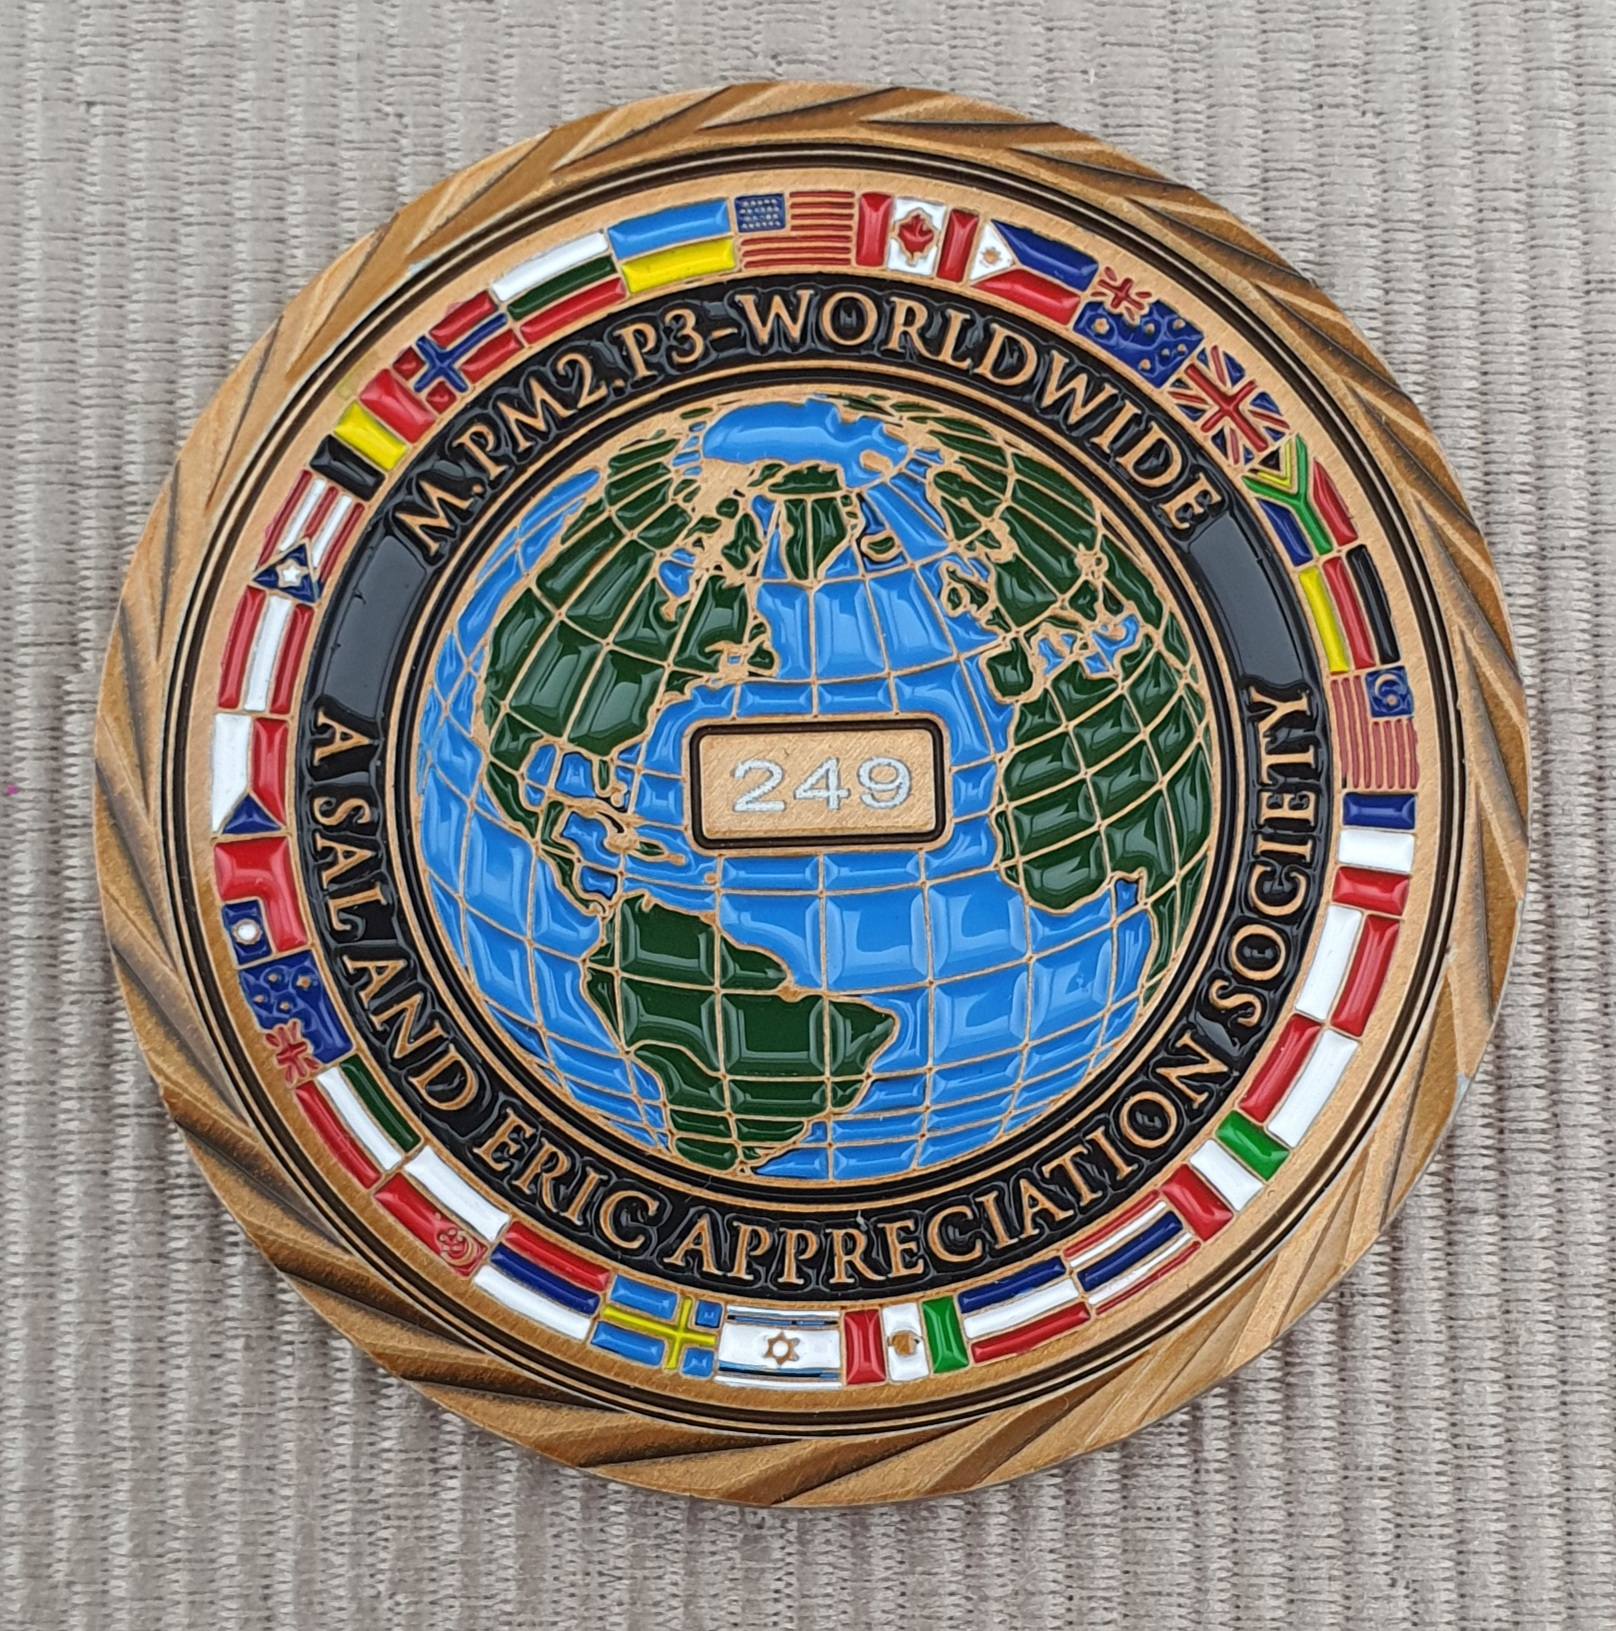 MPM2P3 coin front